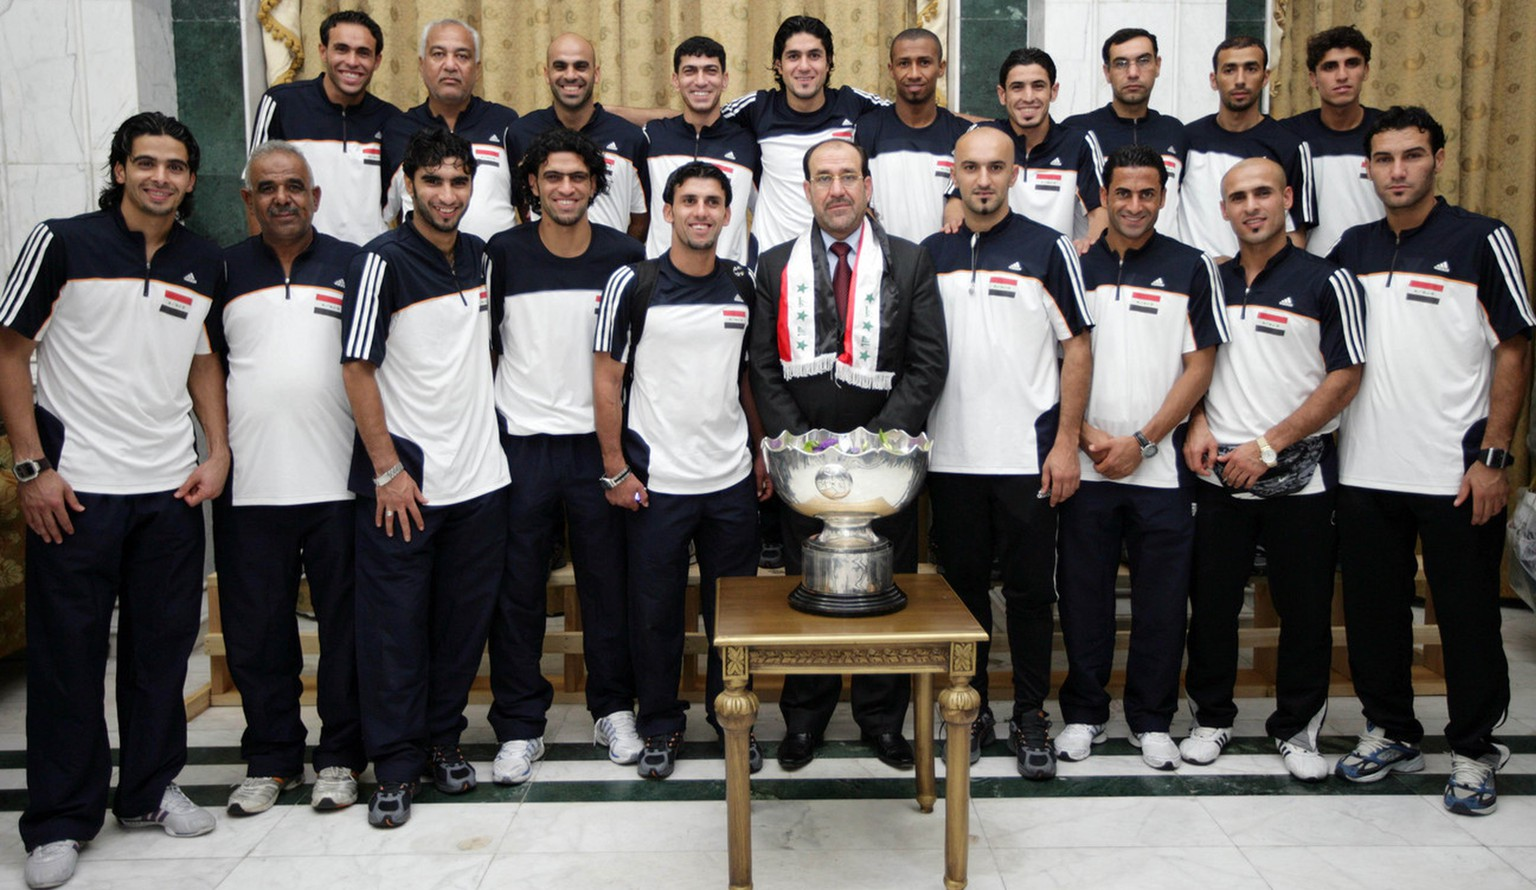 In this image released by the Iraqi government, Prime Minister Nouri al-Maliki, center, stands with the Iraqi national soccer team, at a celebration for their Asian Cup victory in the heavily-fortified Green Zone in Baghdad, Iraq, on Friday, Aug. 3, 2007. (AP Photo/Iraqi Government, HO)